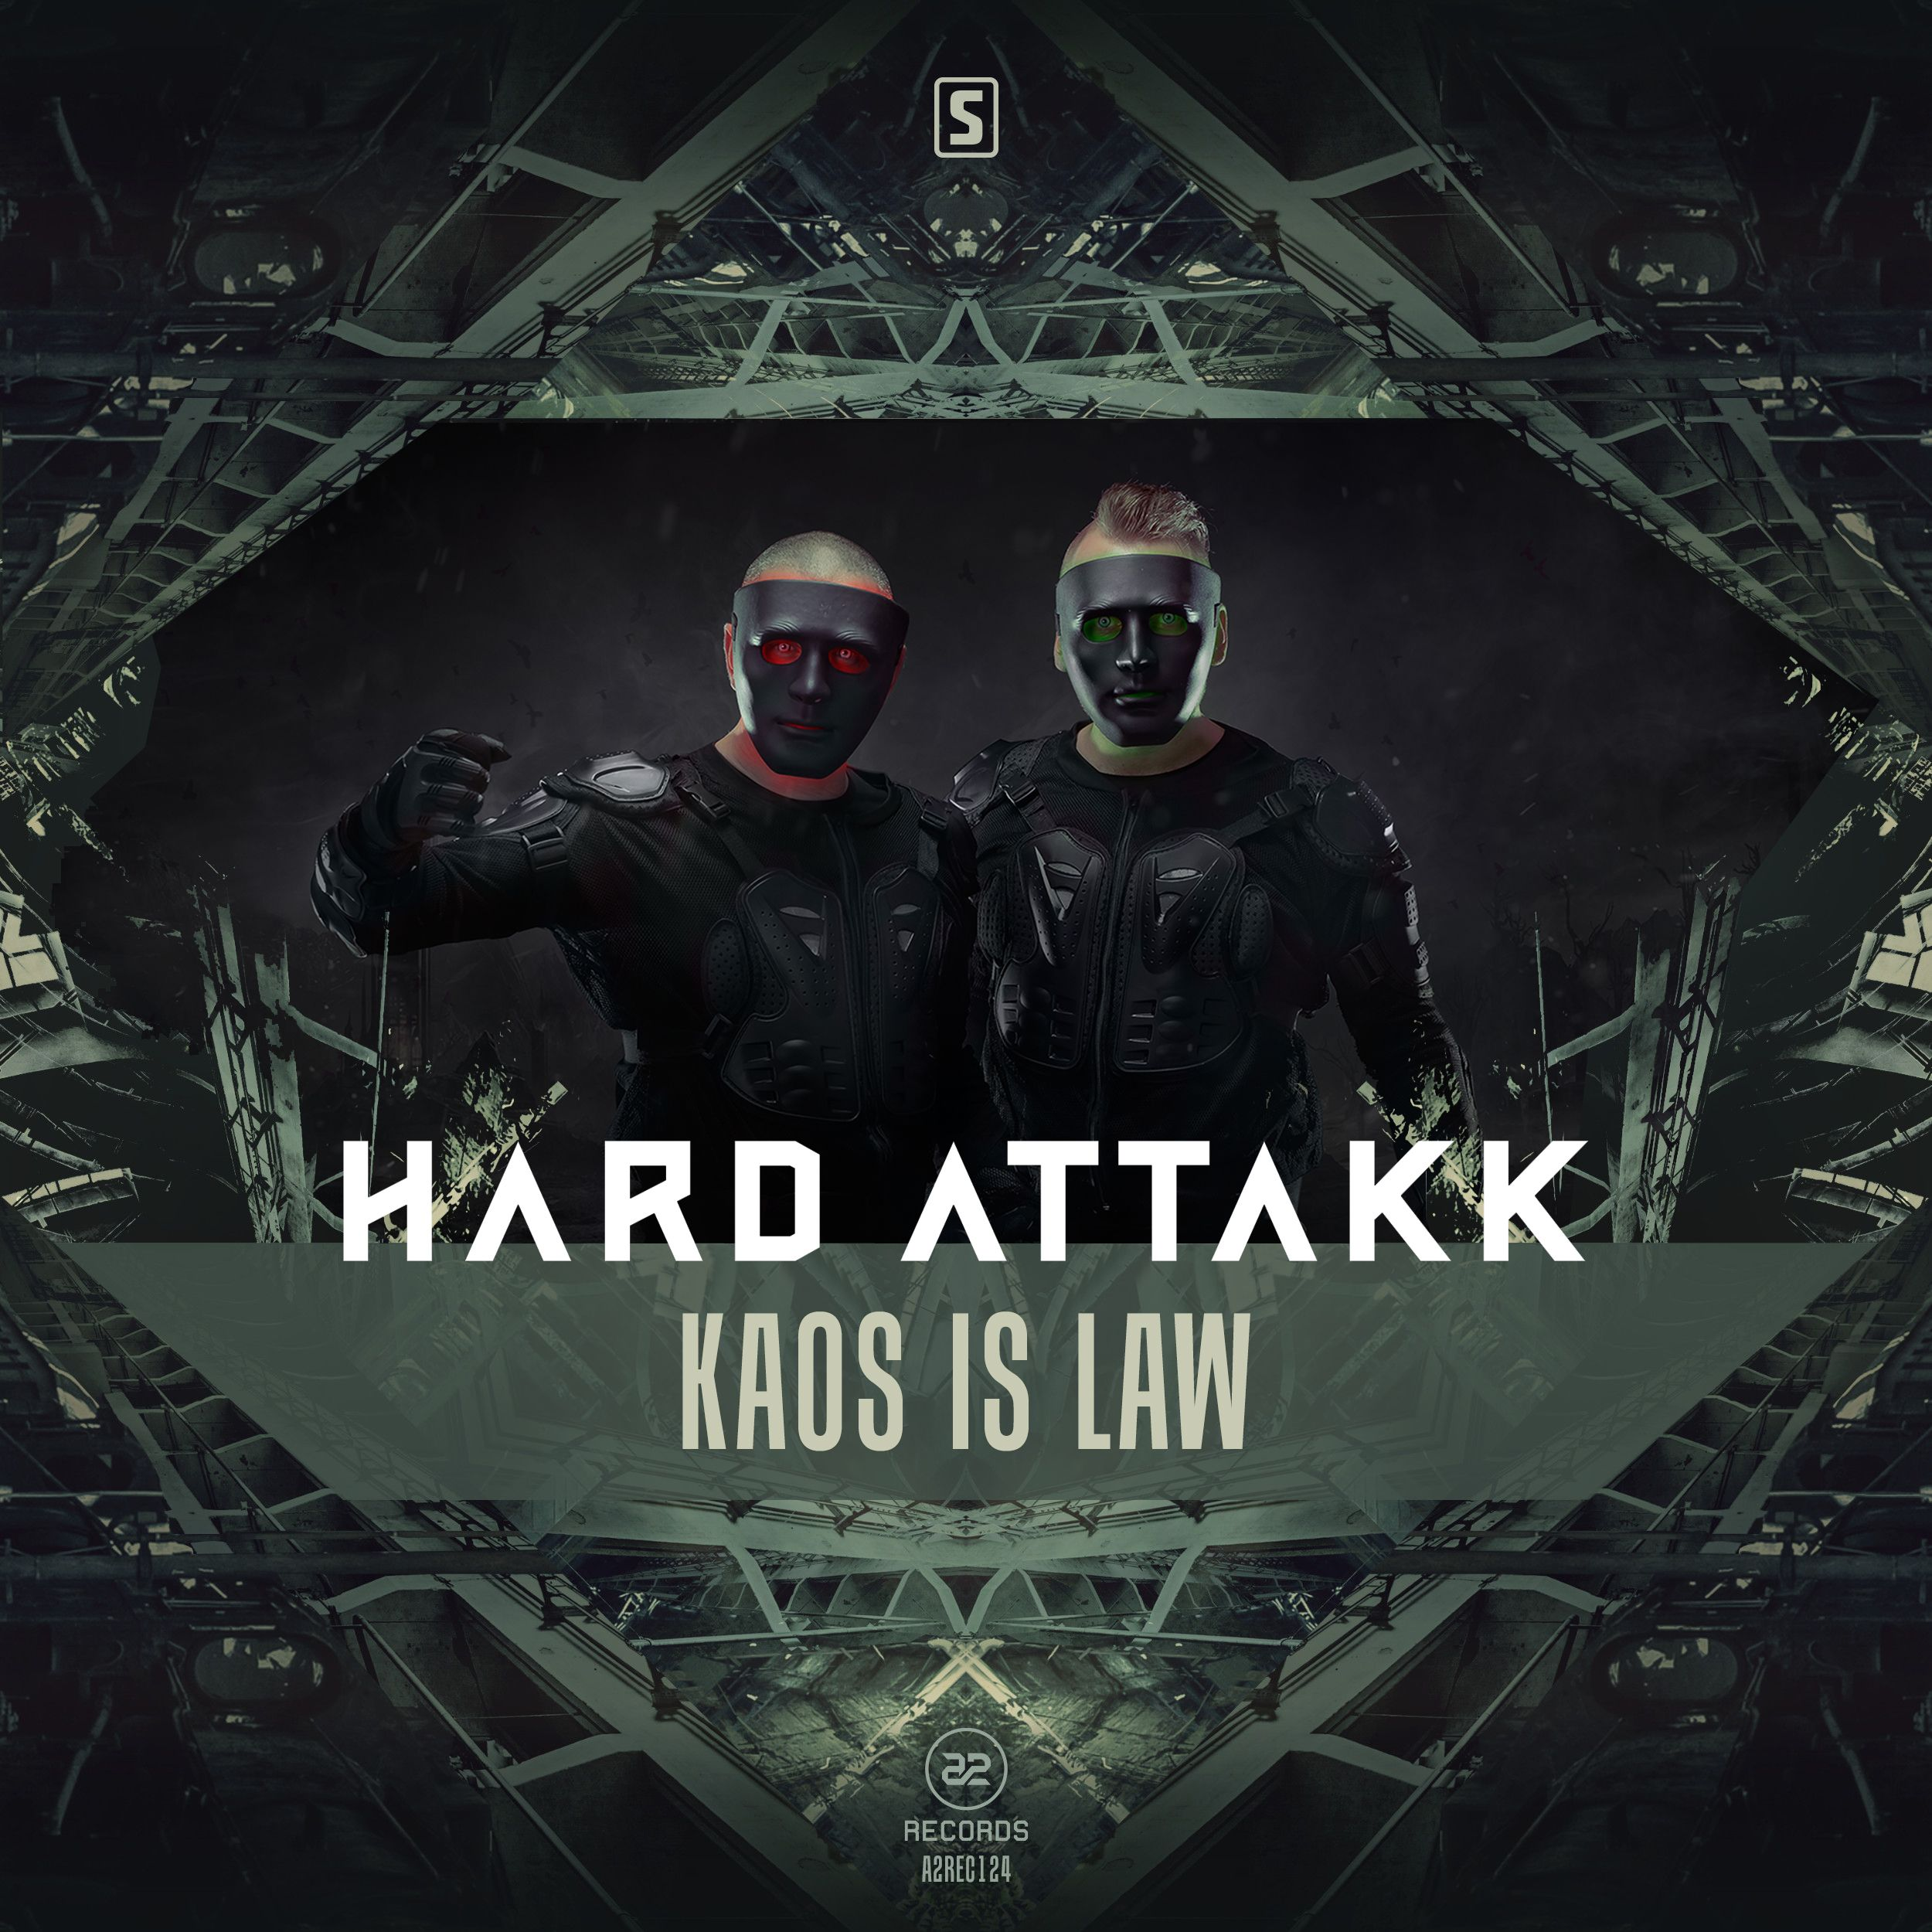 Hard Attakk - Kaos Is Law [A² RECORDS] A2REC124